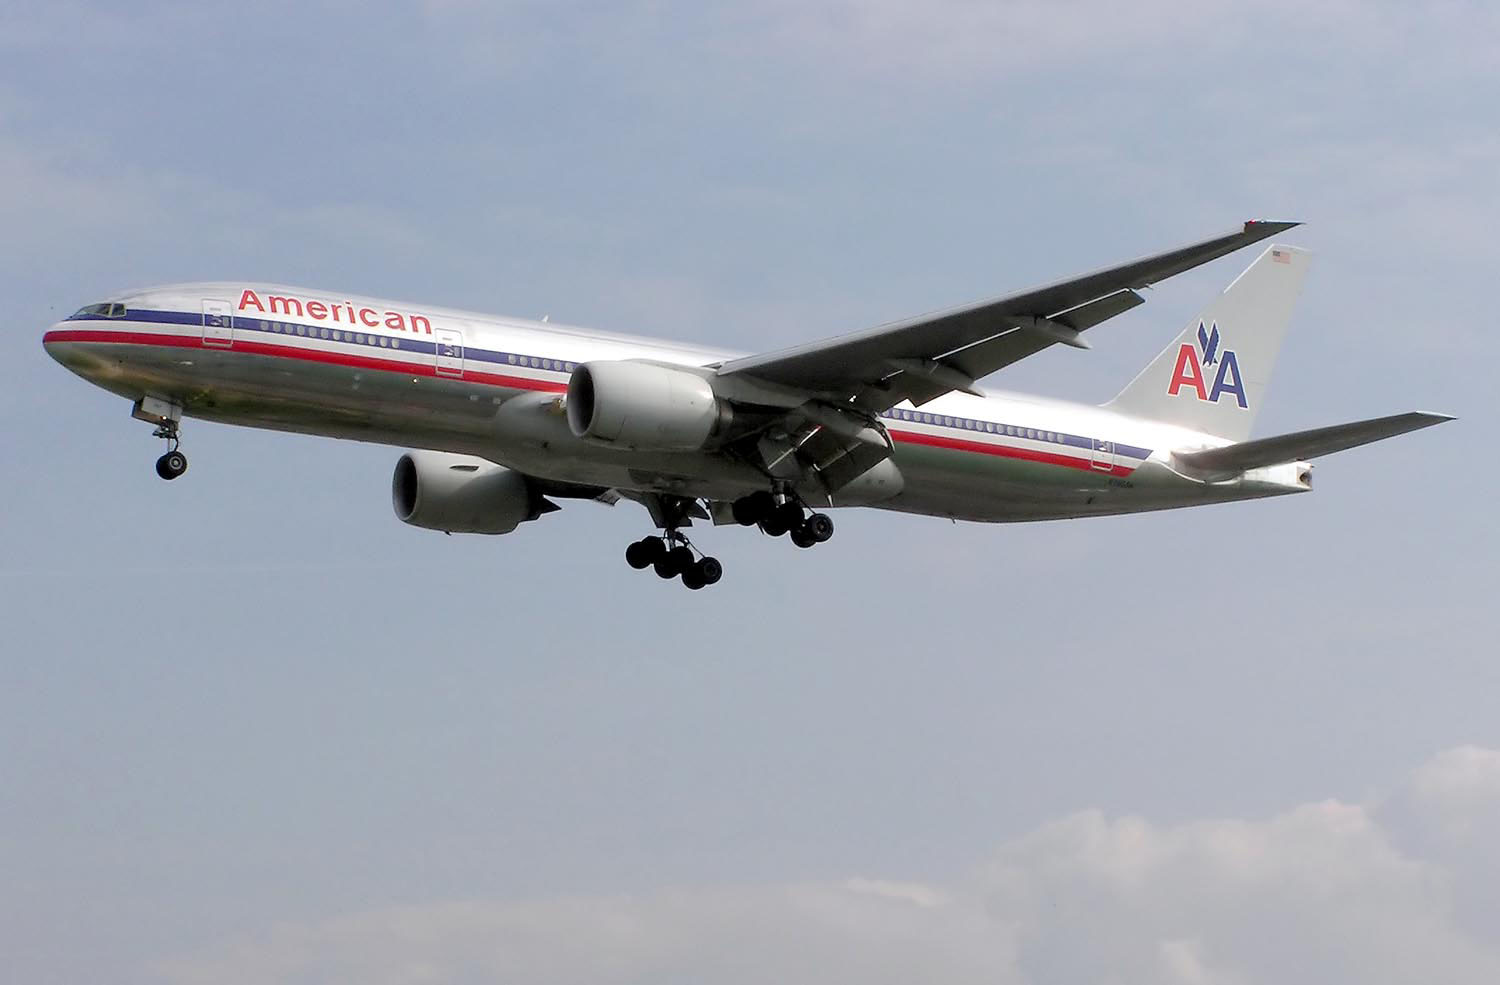 Download this File American Airlines Arp picture